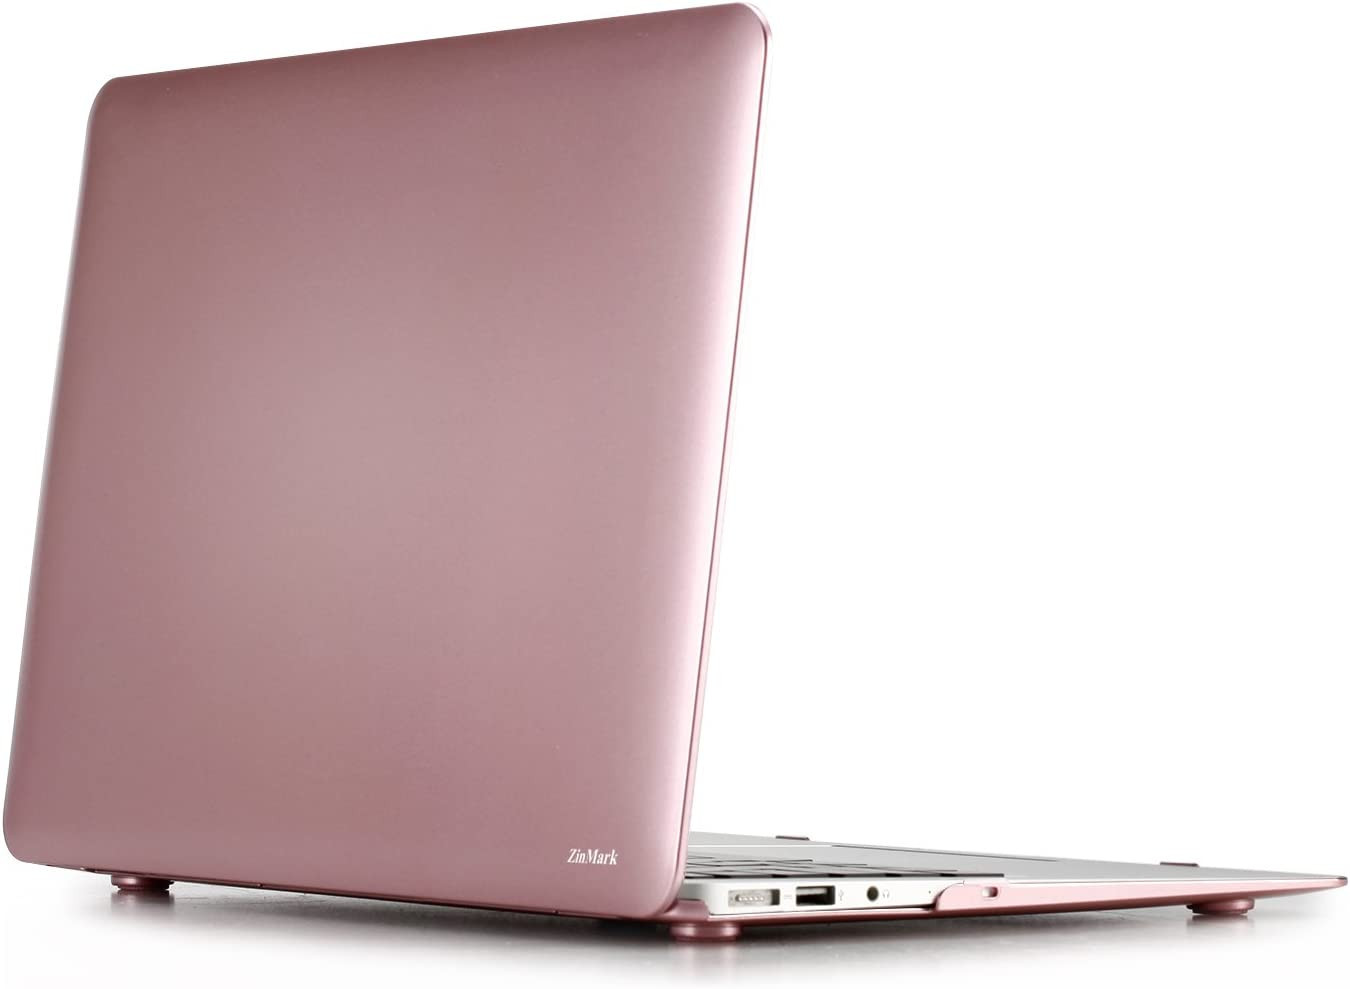 Zinmark 13 Inch Laptop Case Cover Compatible with MacBook Air 13.3 Inch A1369 / A1466, Plastic Folio Hard Cover Case - Rose Gold